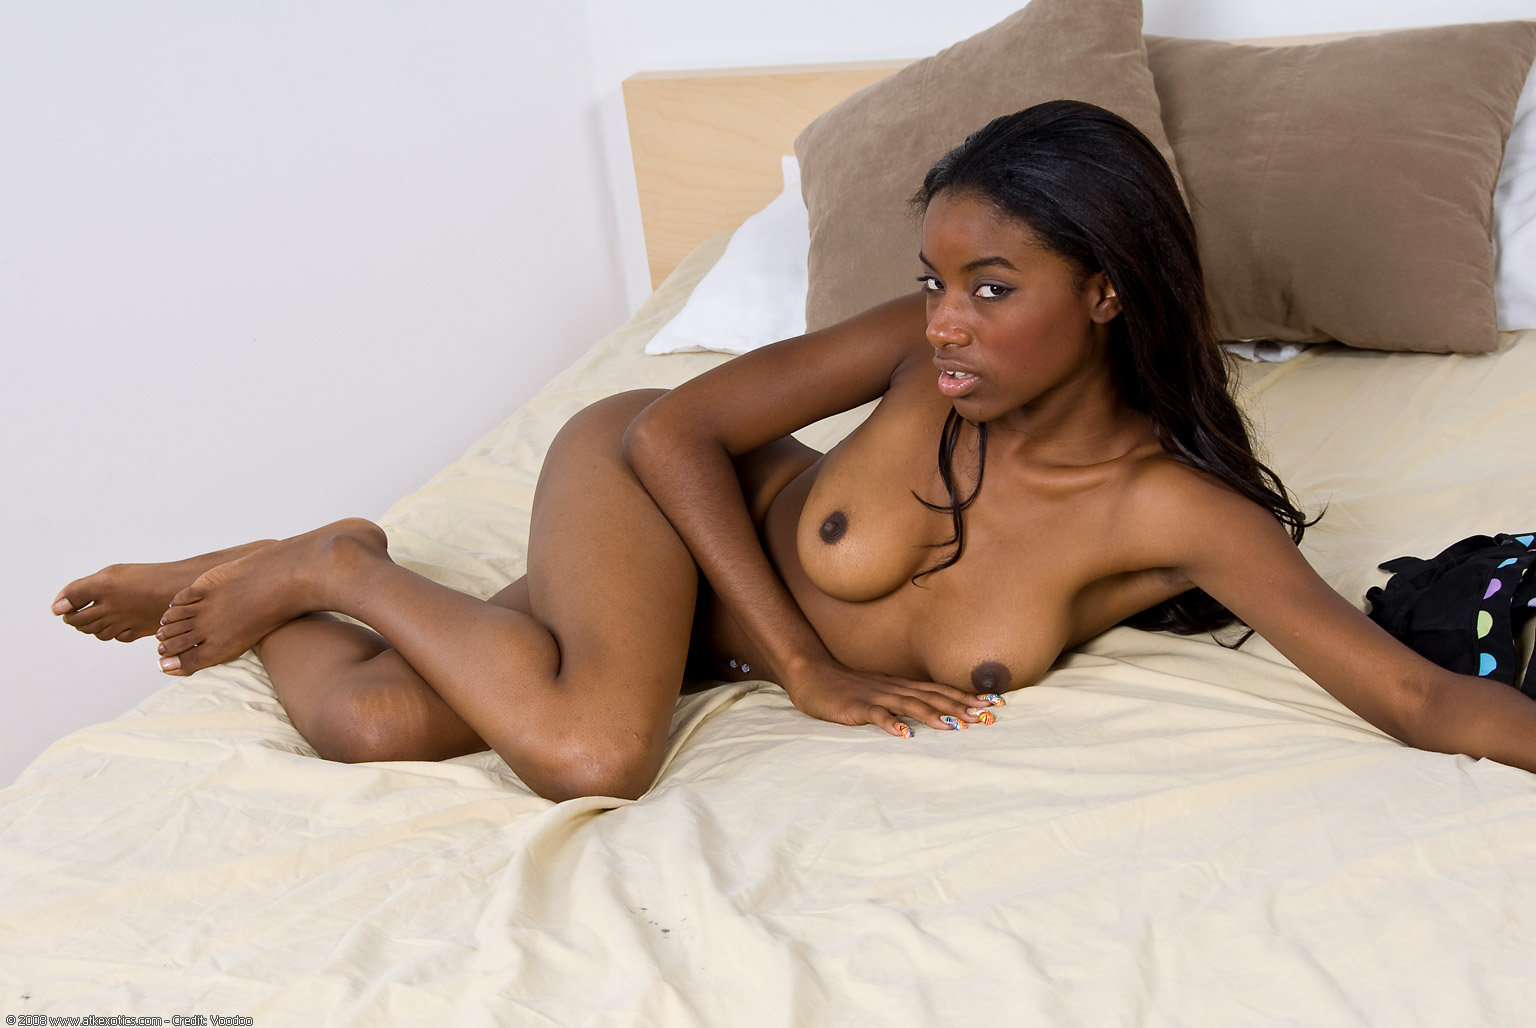 Amateur Ebony Teens in Threesome Video - Free Porn Videos